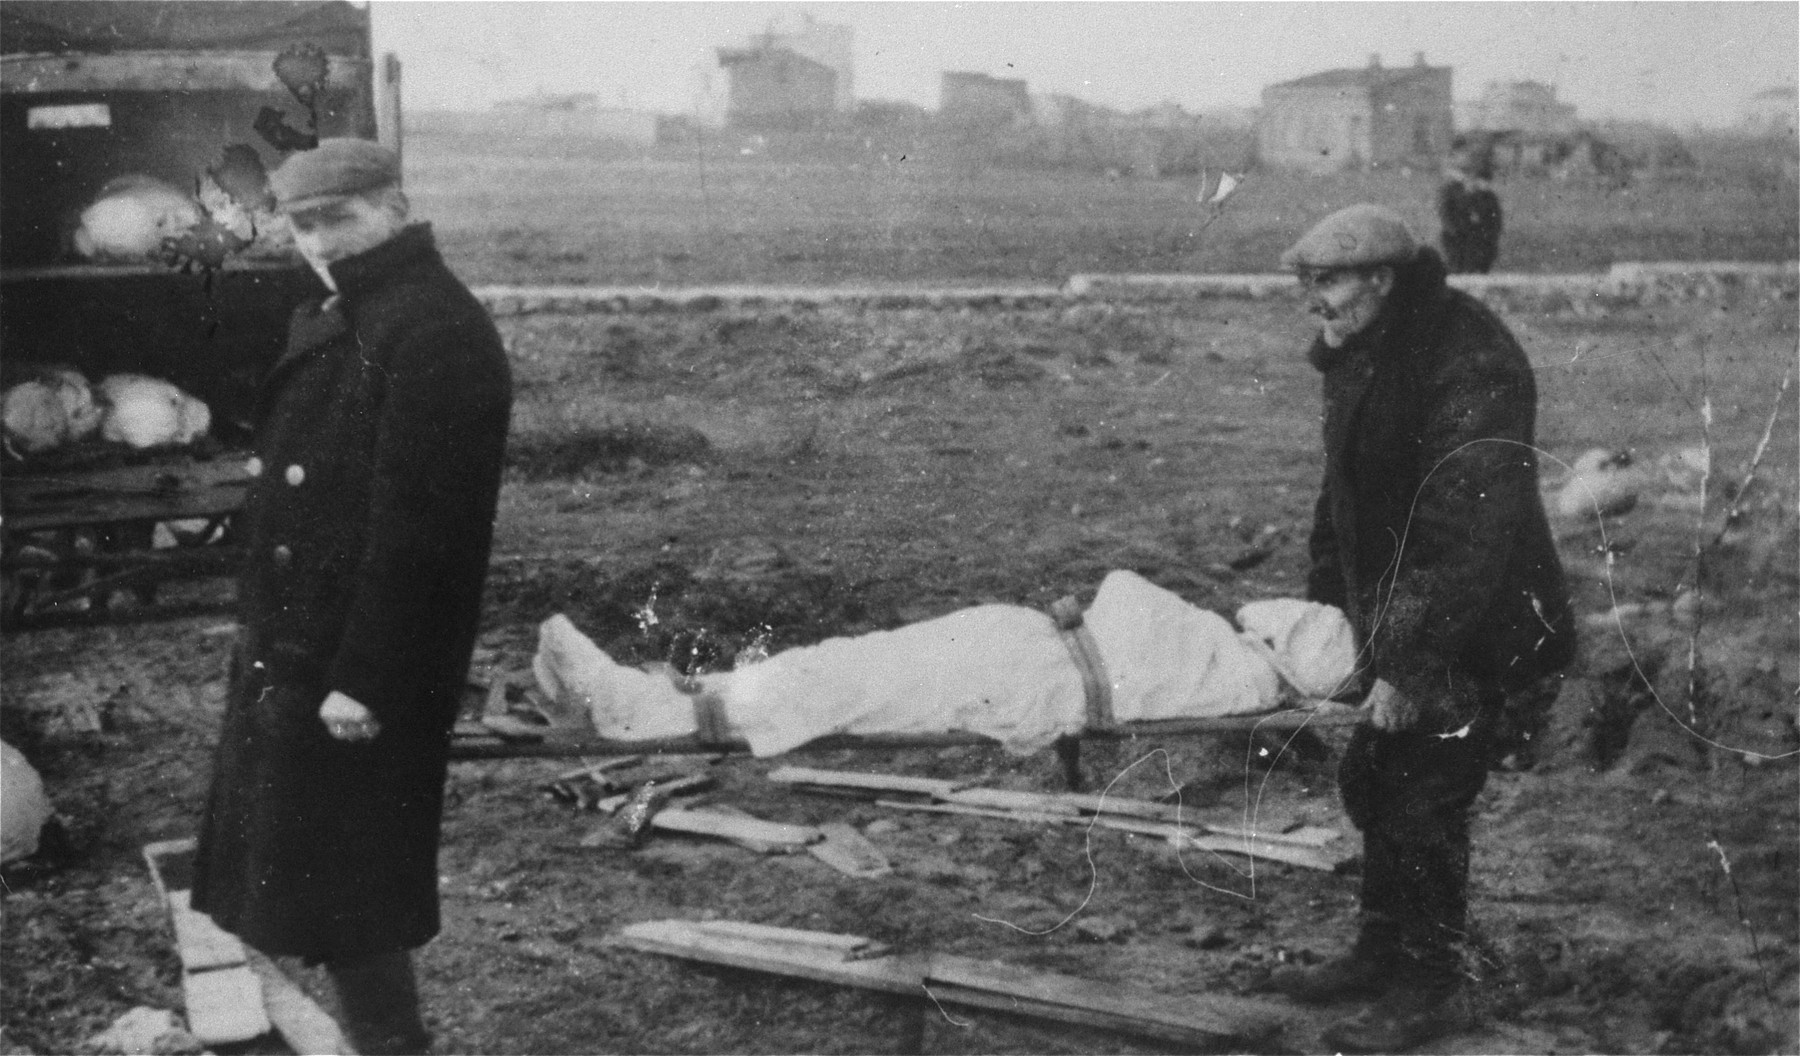 Two men remove a corpse from a truck and carry it to a burial site in the Jewish cemetery in Kutno.